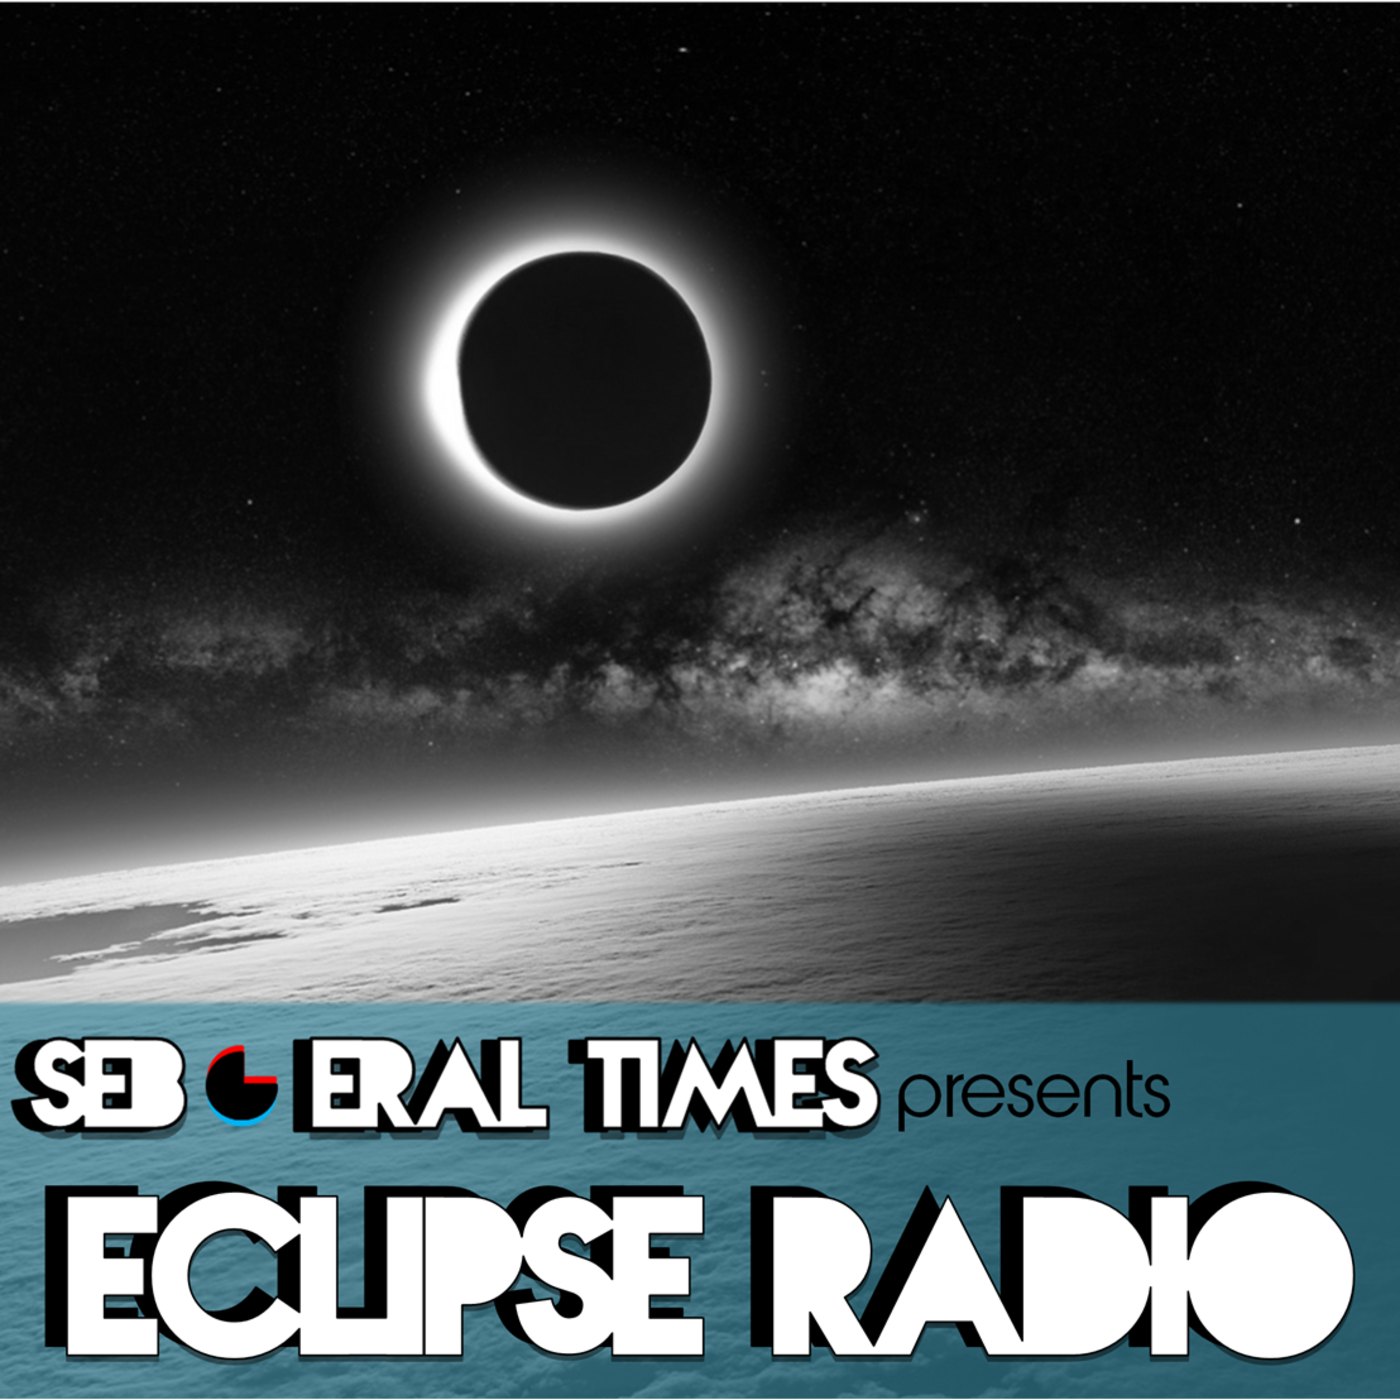 Seb-eral Times presents Eclipse Radio